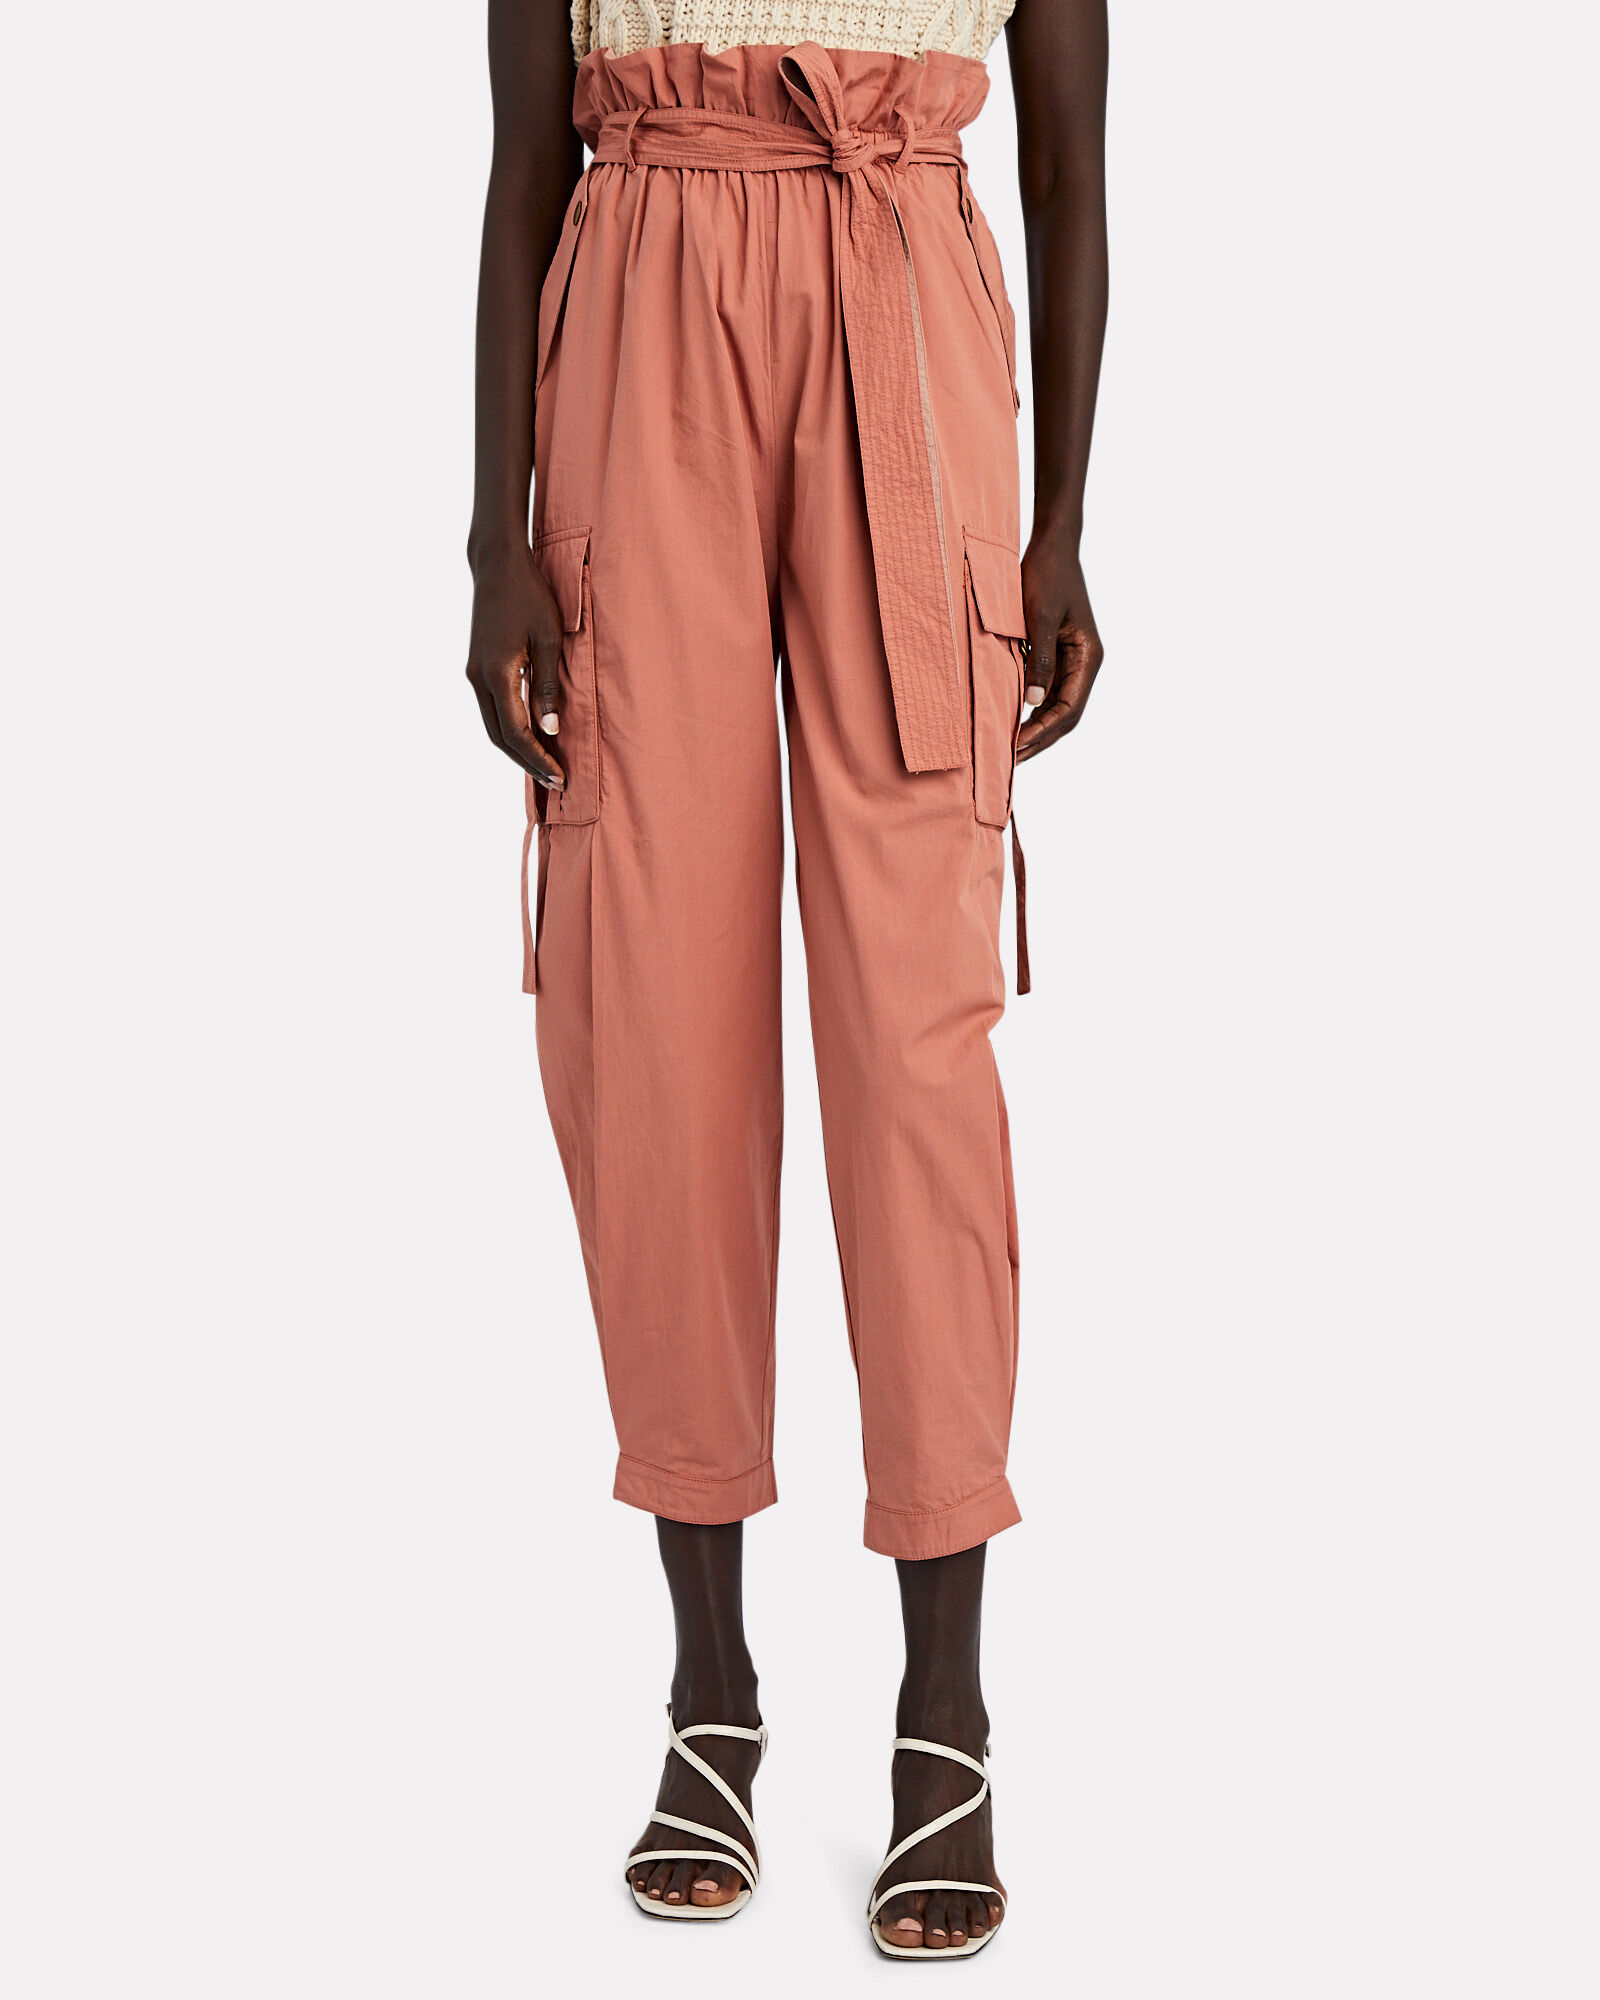 Willett Paperbag Cargo Trousers, BROWN, hi-res